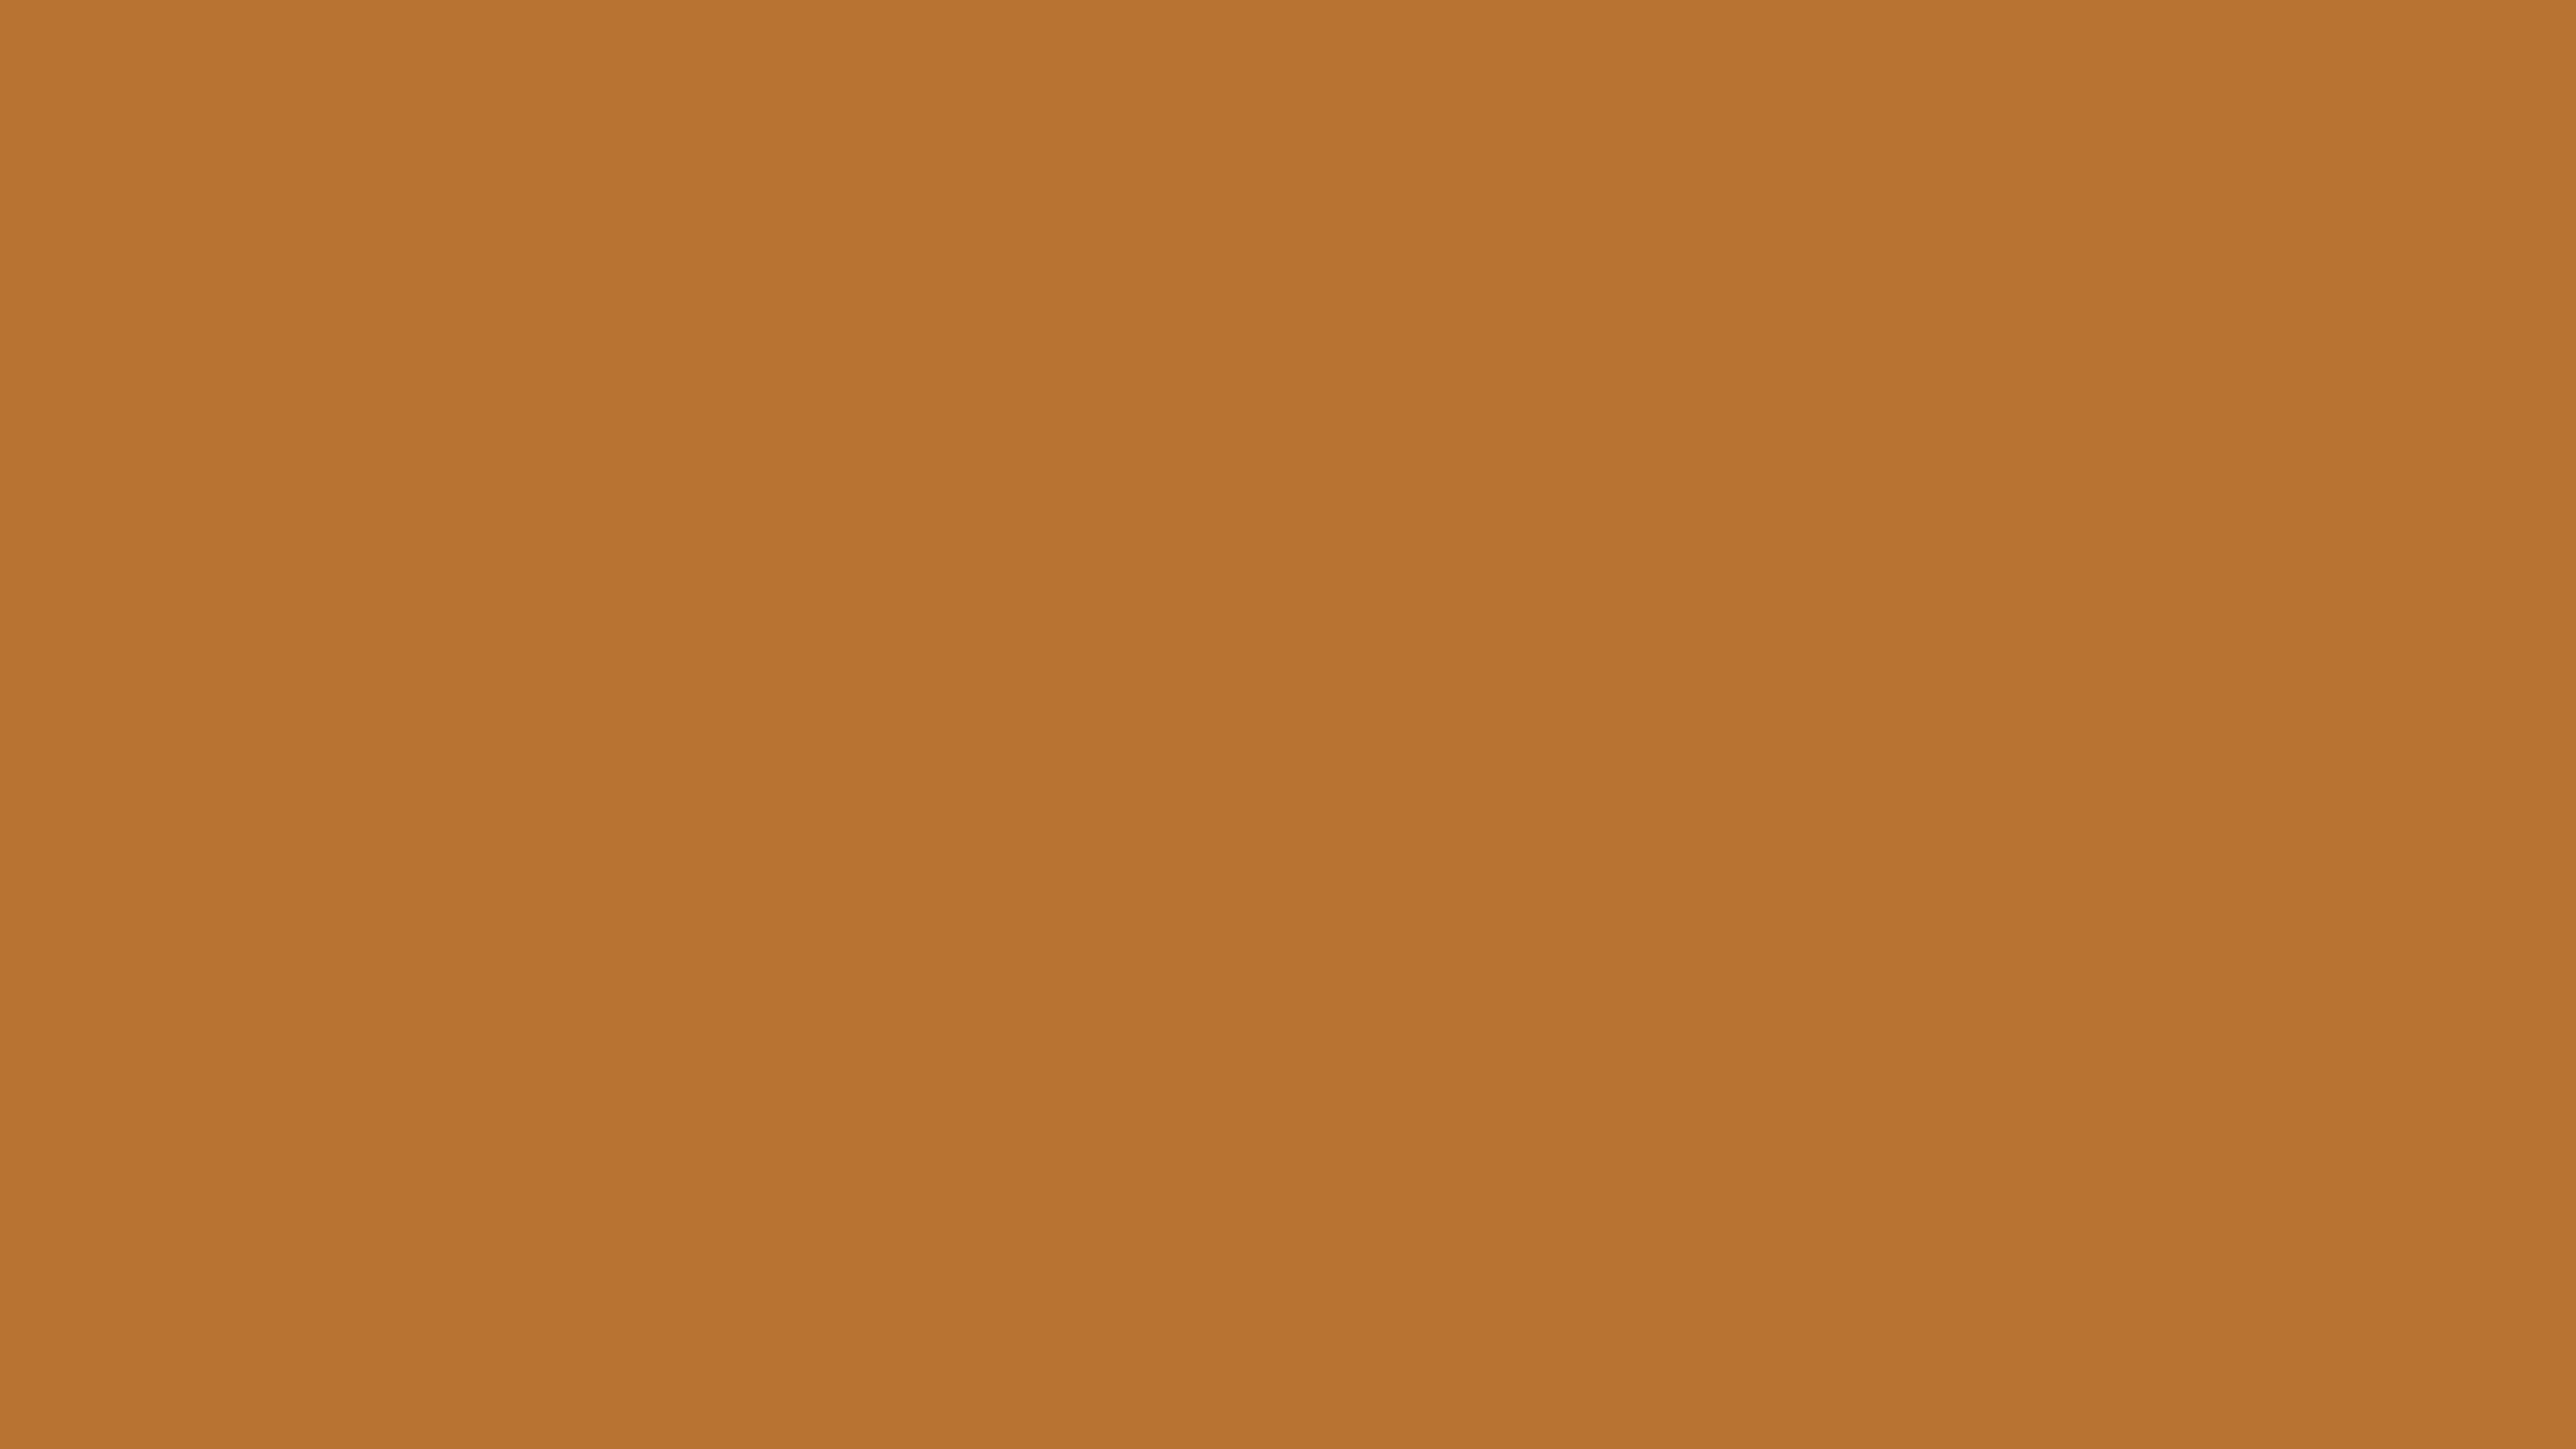 3840x2160 Copper Solid Color Background